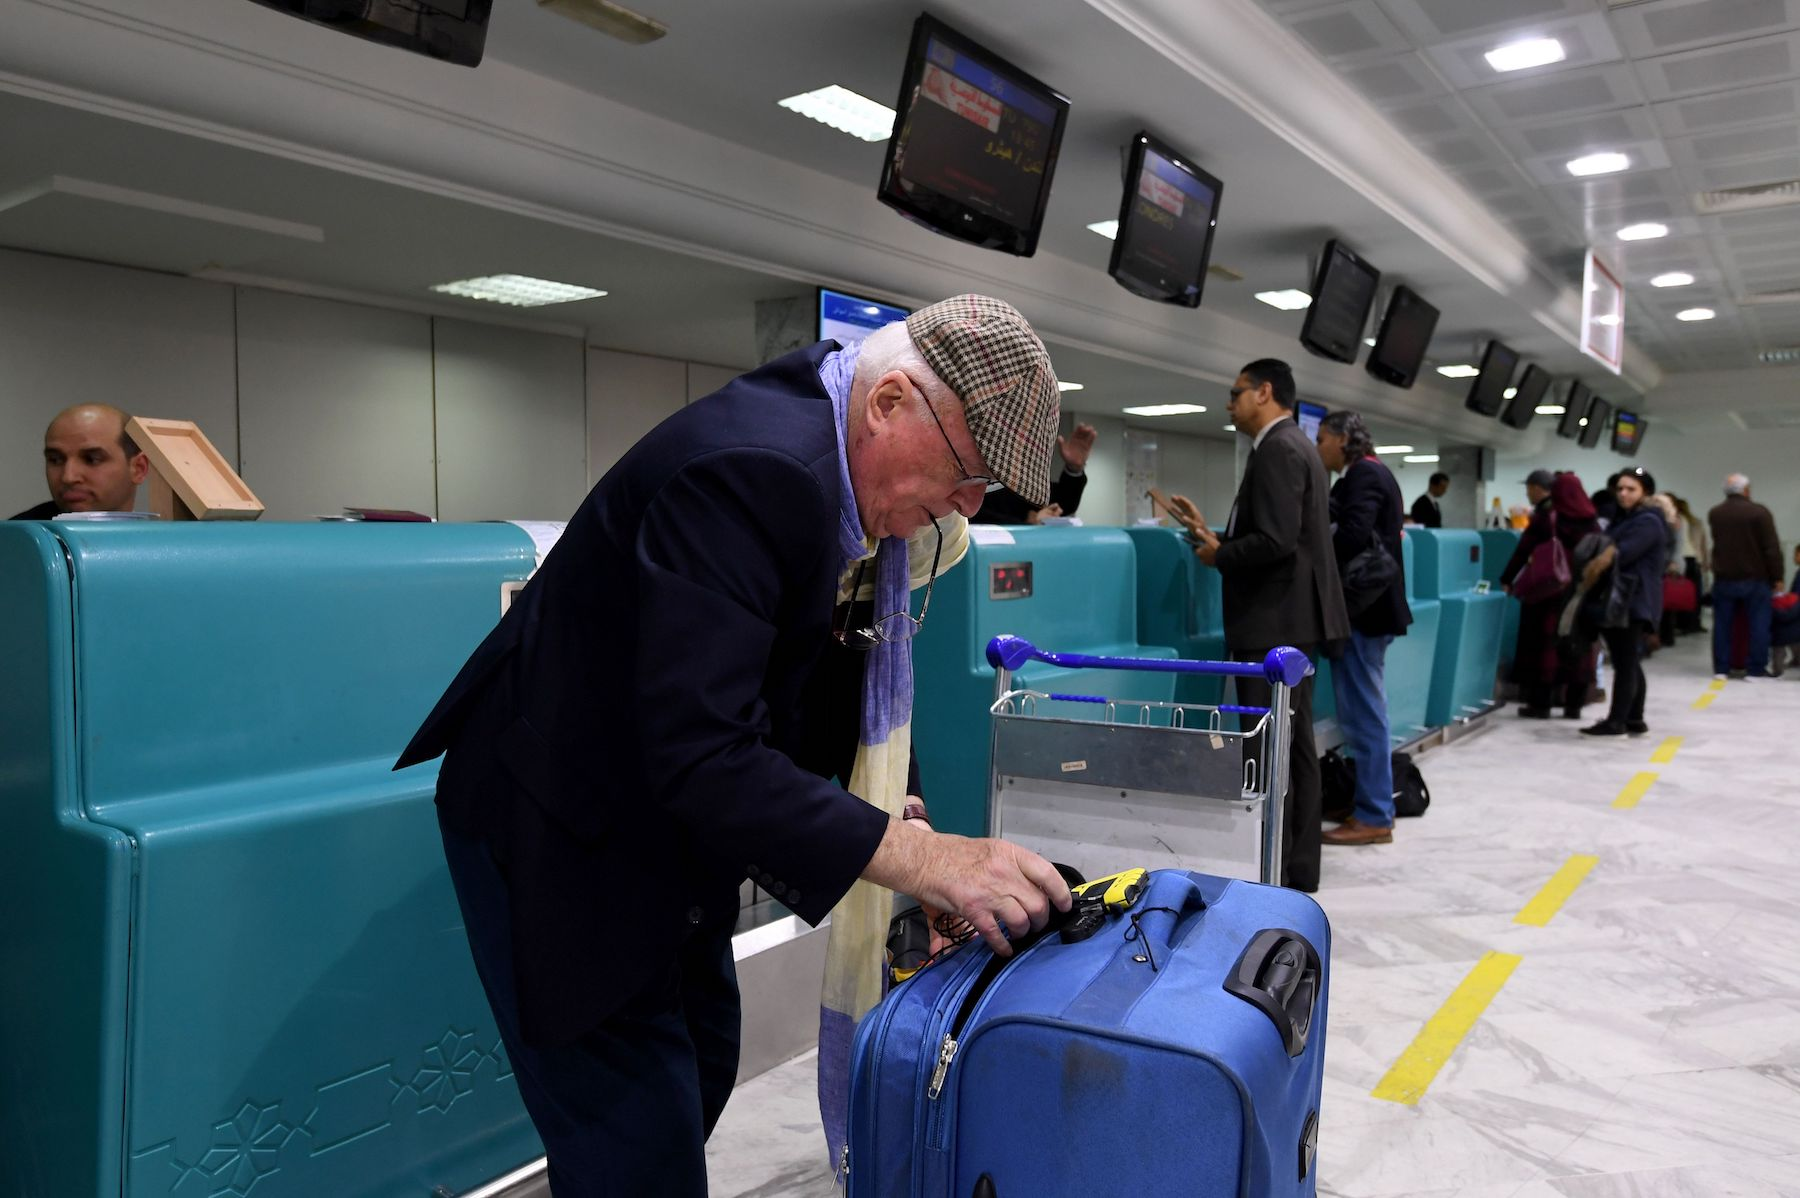 A British traveler packs his phones in his suitcase before boarding his flight for London at Tunis-Carthage International Airport